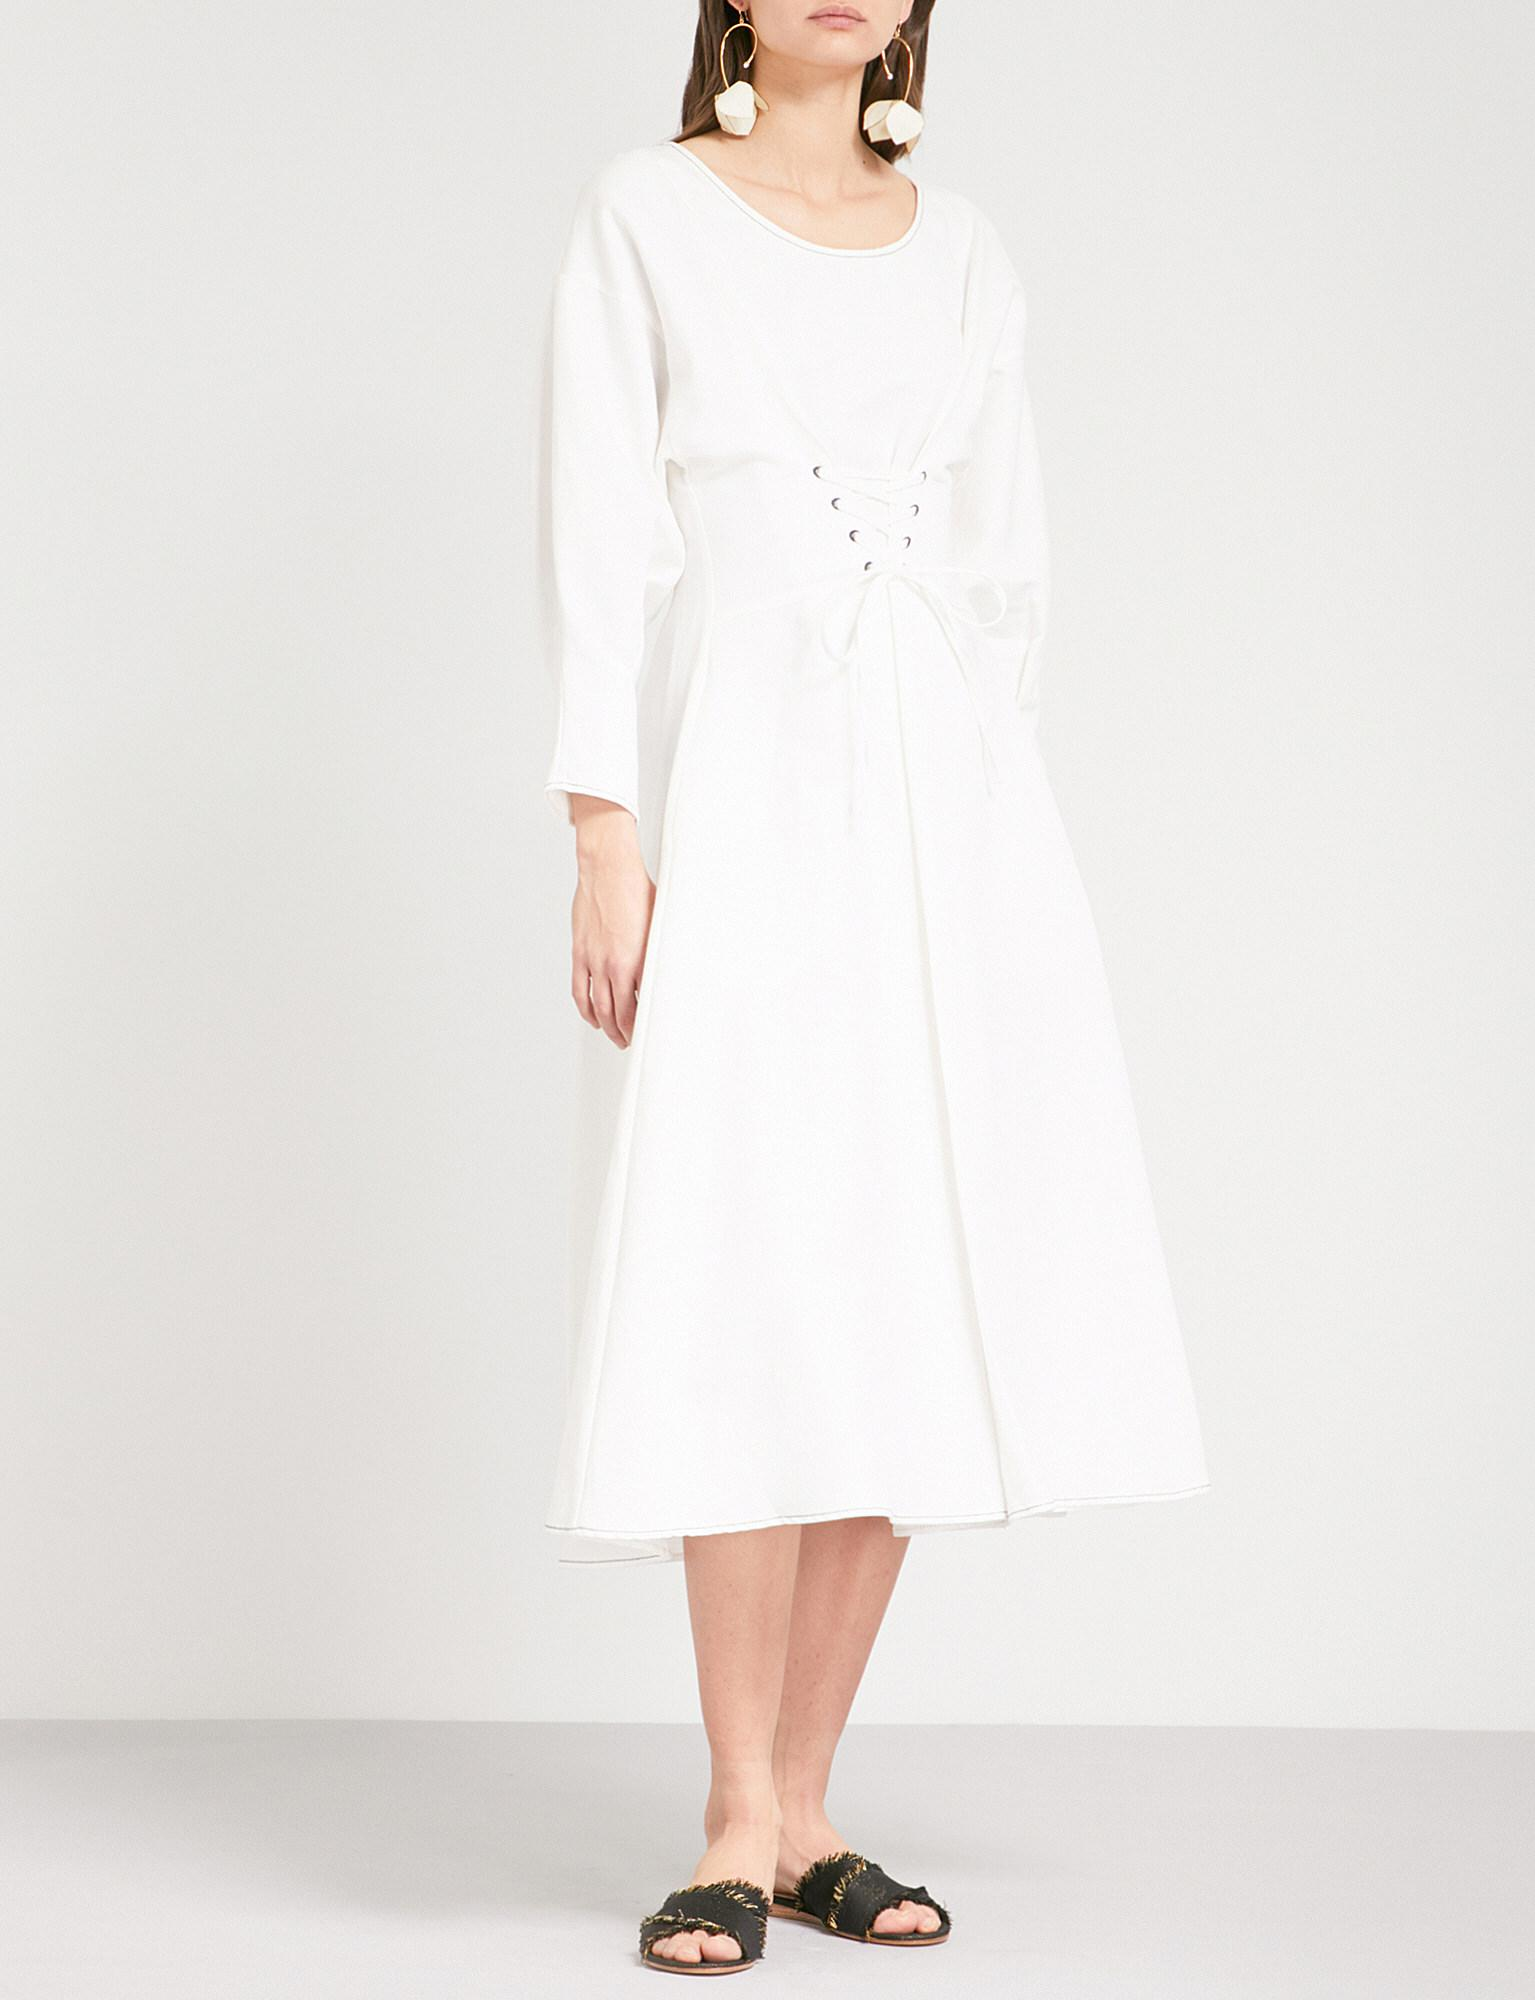 01c4b6fce90 Rejina Pyo Irene Fit-and-flare Linen And Cotton-blend Dress in White ...